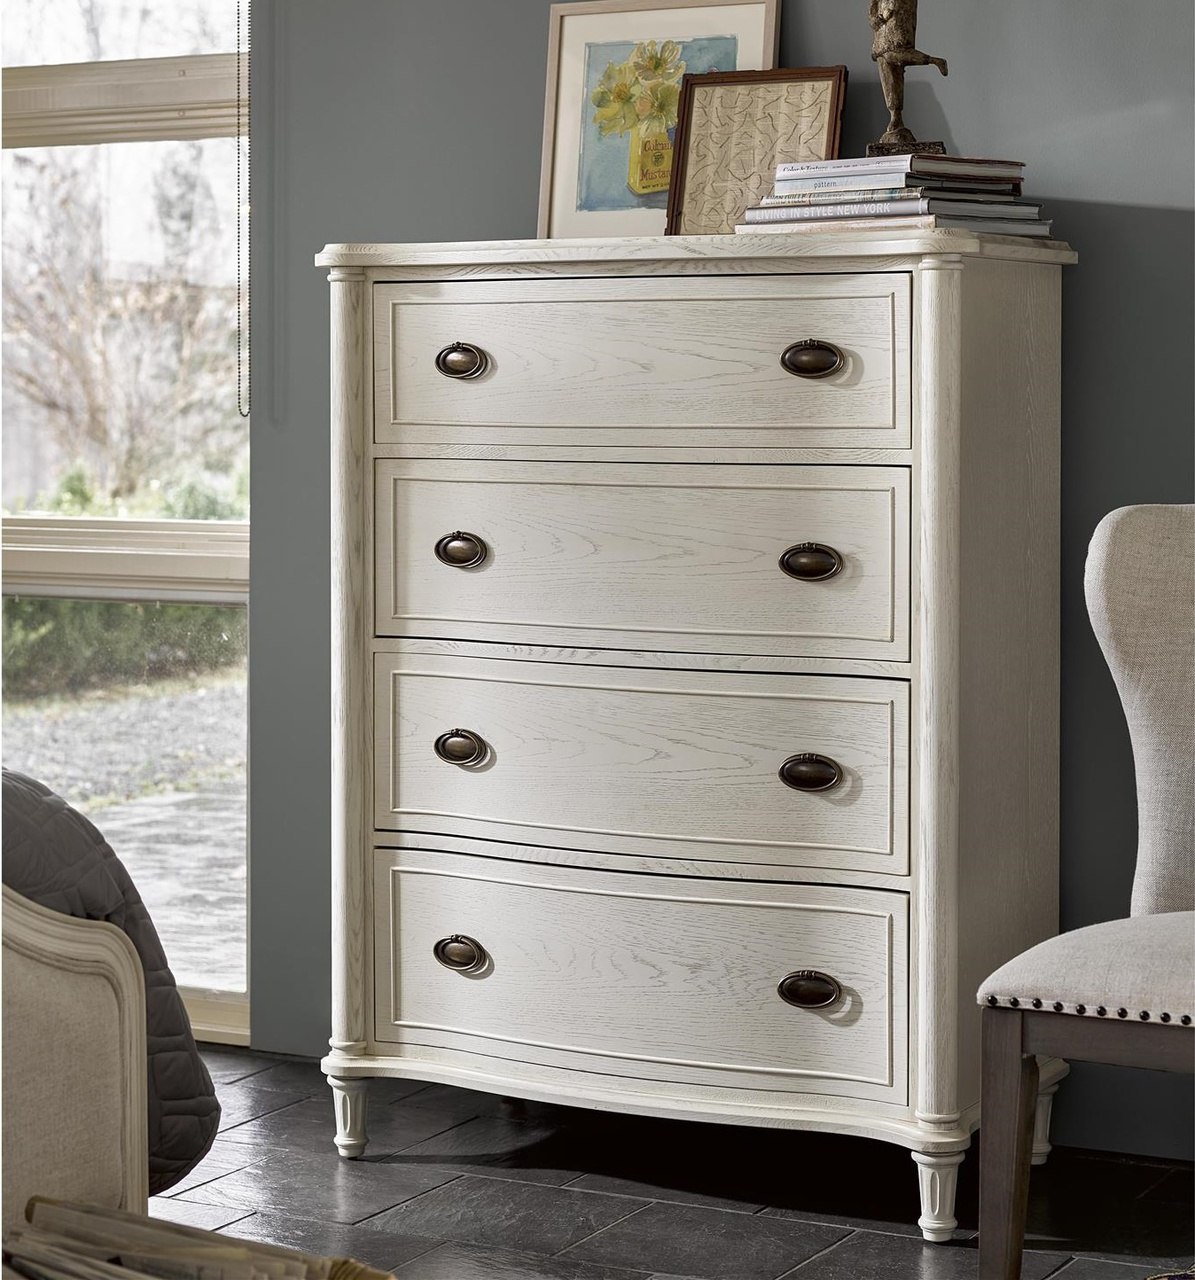 Universal Furniture Amity French Oak Wood 4 Drawer Chest - White